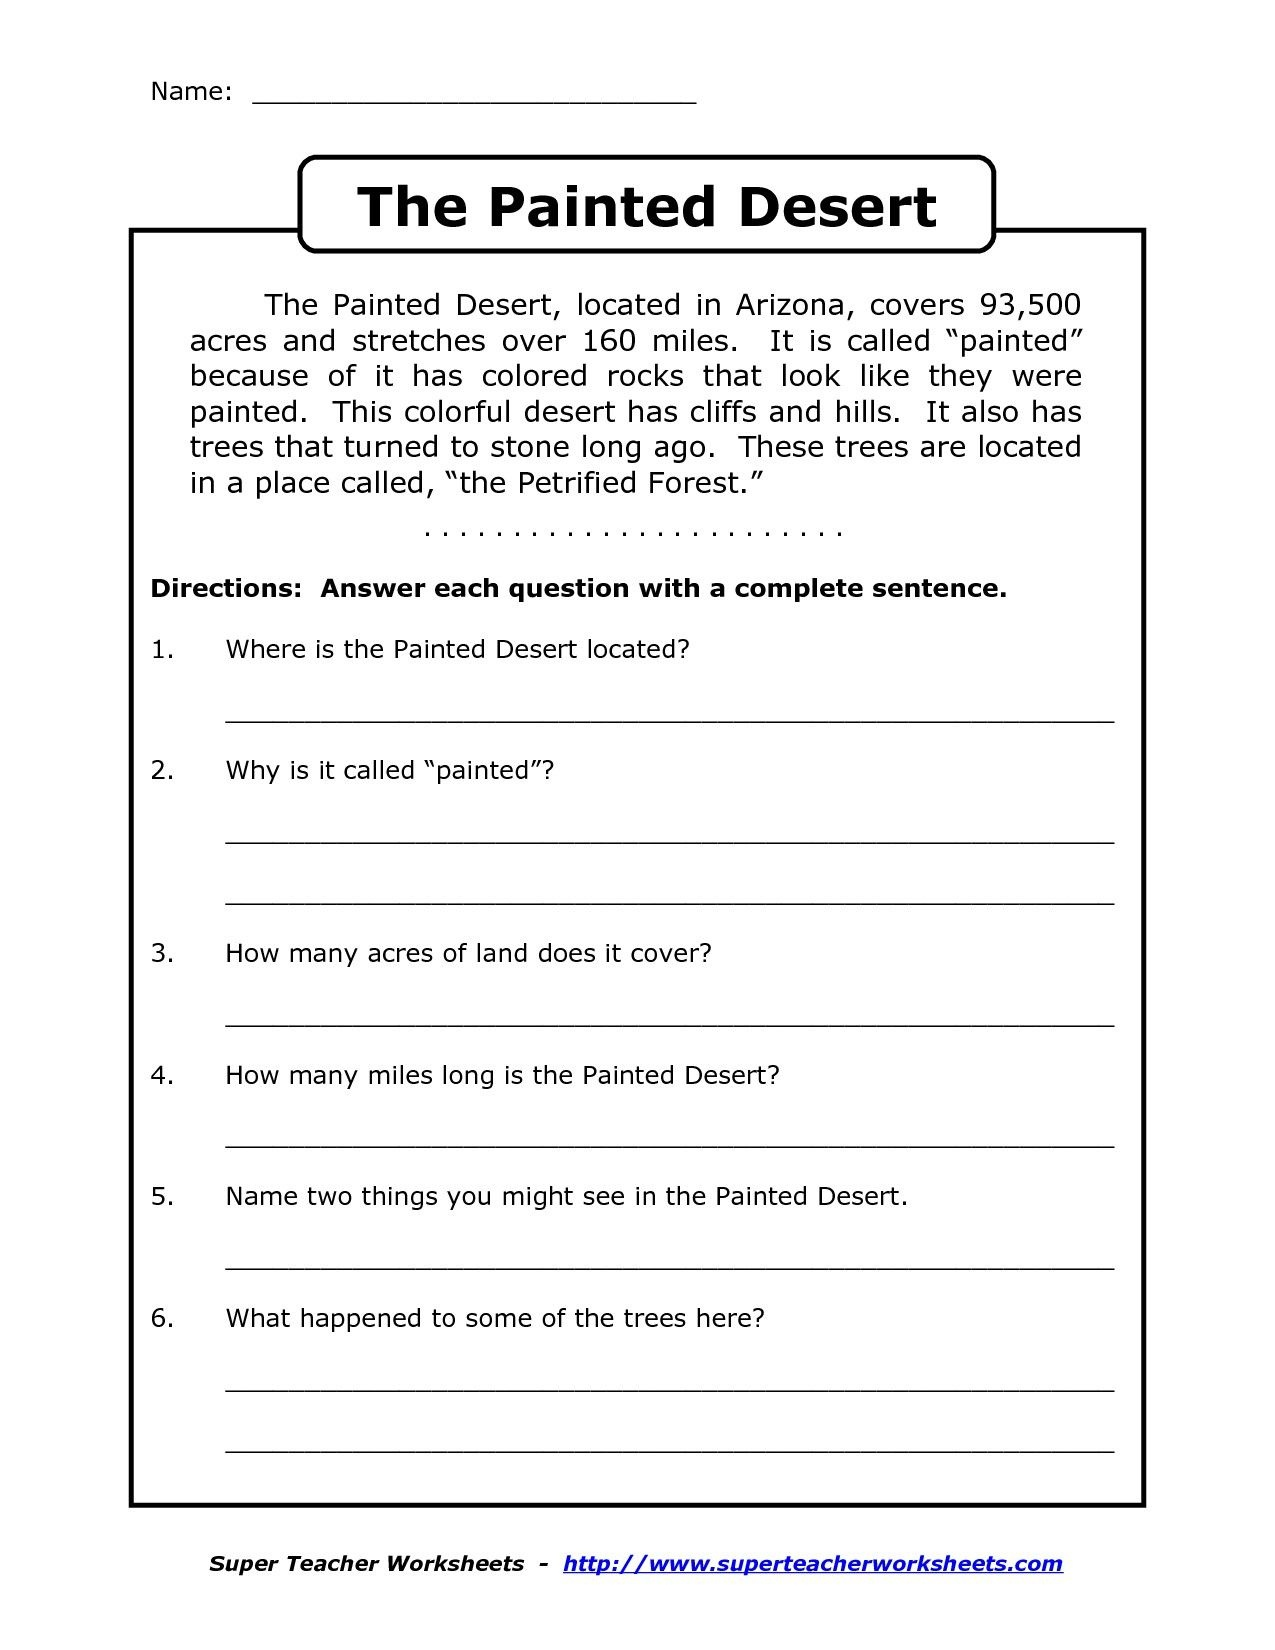 Image Result For Free Printable Worksheets For Grade 4 Comprehension - Free Printable English Comprehension Worksheets For Grade 4